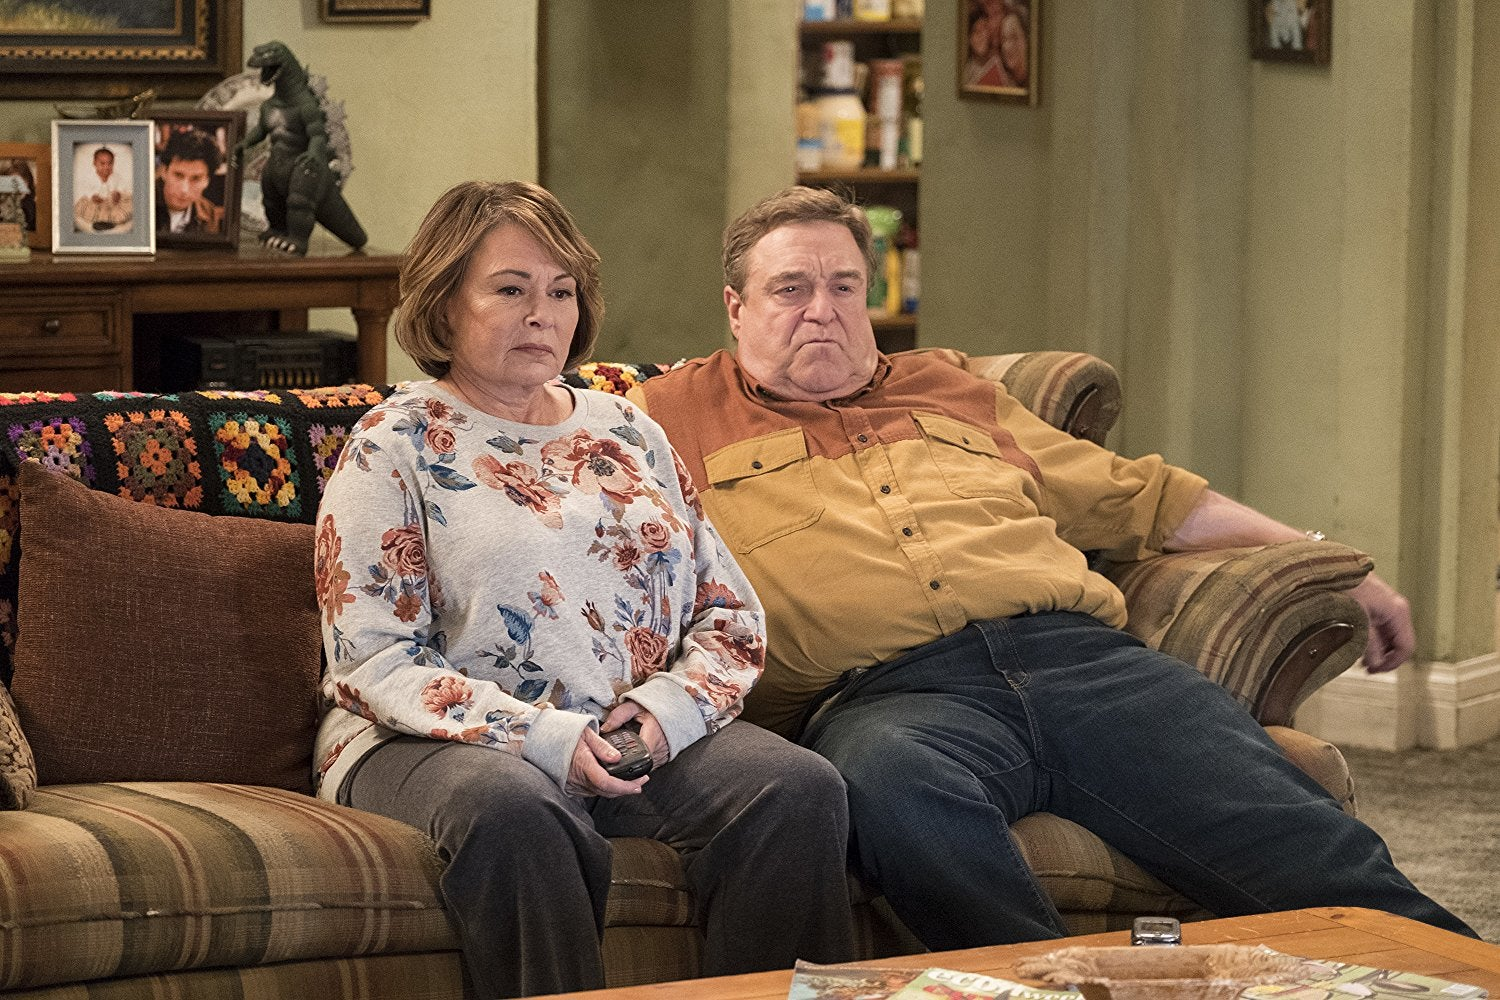 The Roseanne reboot is here to stay.